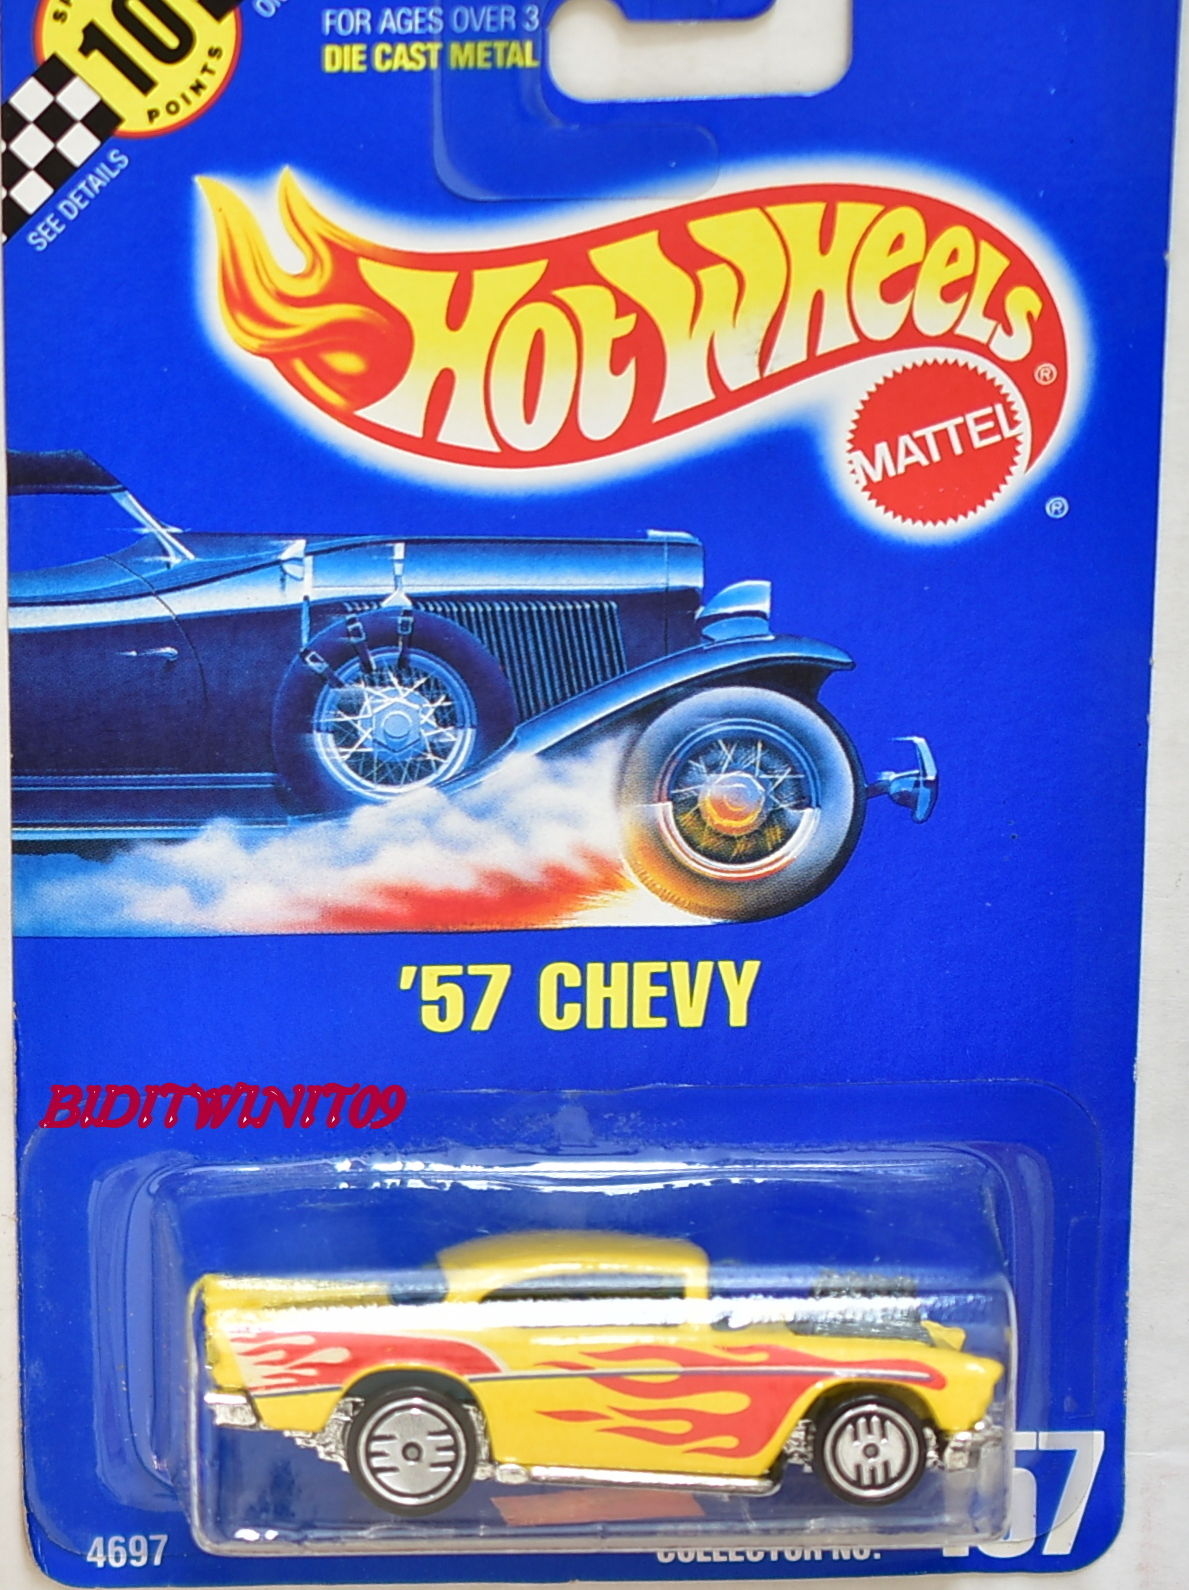 HOT WHEELS 1990 BLUE CARD '57 CHEVY WITH 157 ON BASE